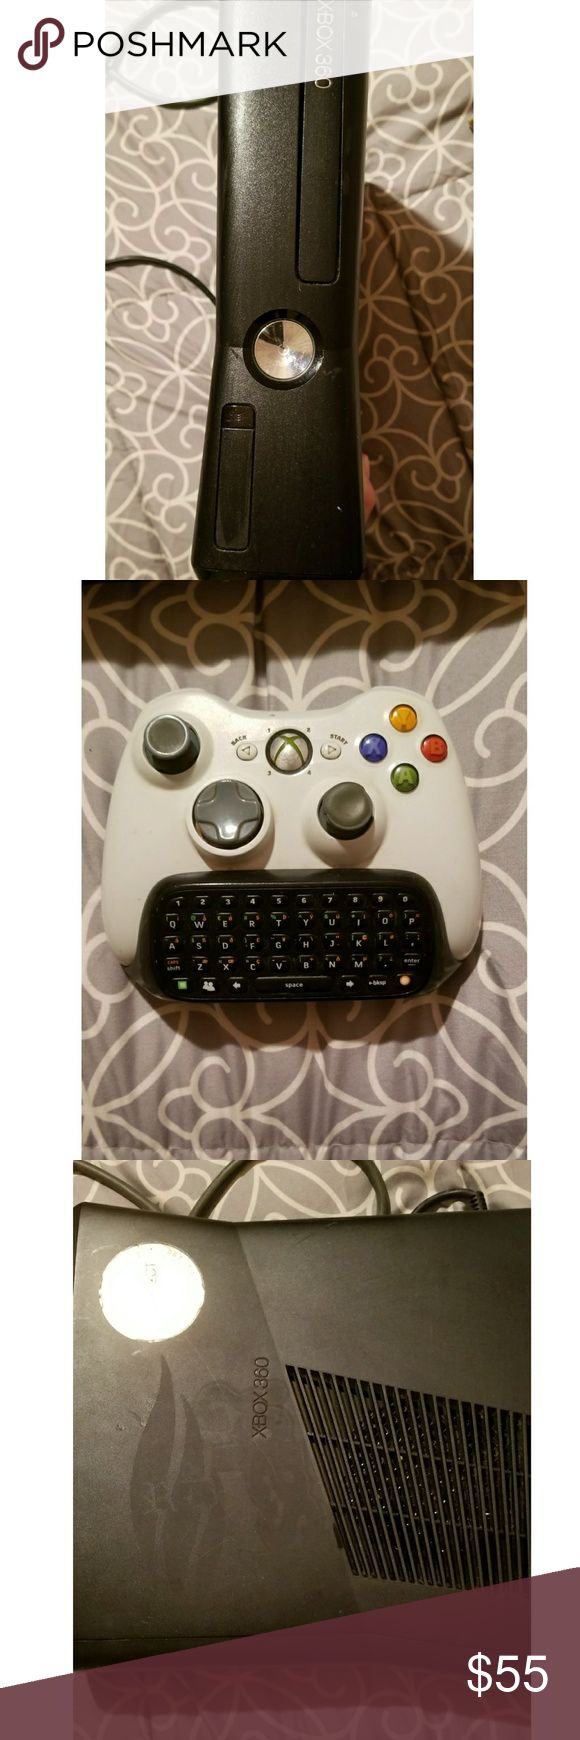 Xbox 360 Xbox 360 Slim does have a sticker on it as shown in  the pictures comes with two remotes a keyboard and 7 games ~ Forza Motorsport 4 Midnight Club Los Angeles  Forza Motorsport 2  Saints Row 2 Call of Duty Black Ops  Thief  Need for Speed Pro Street In good condition everything works  Make an offer ❤ Xbox 360 Other